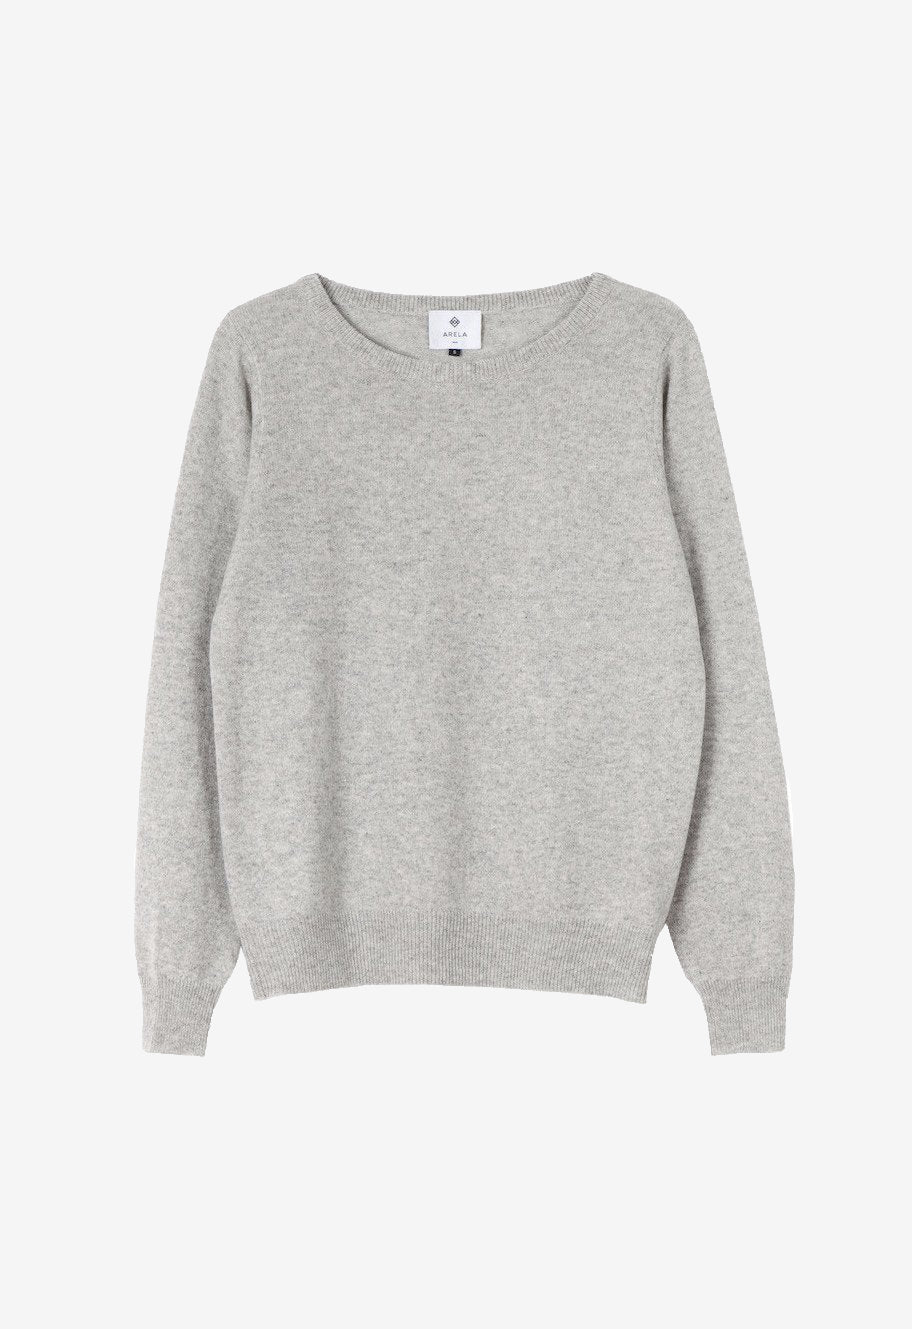 Laine cashmere sweater in light grey